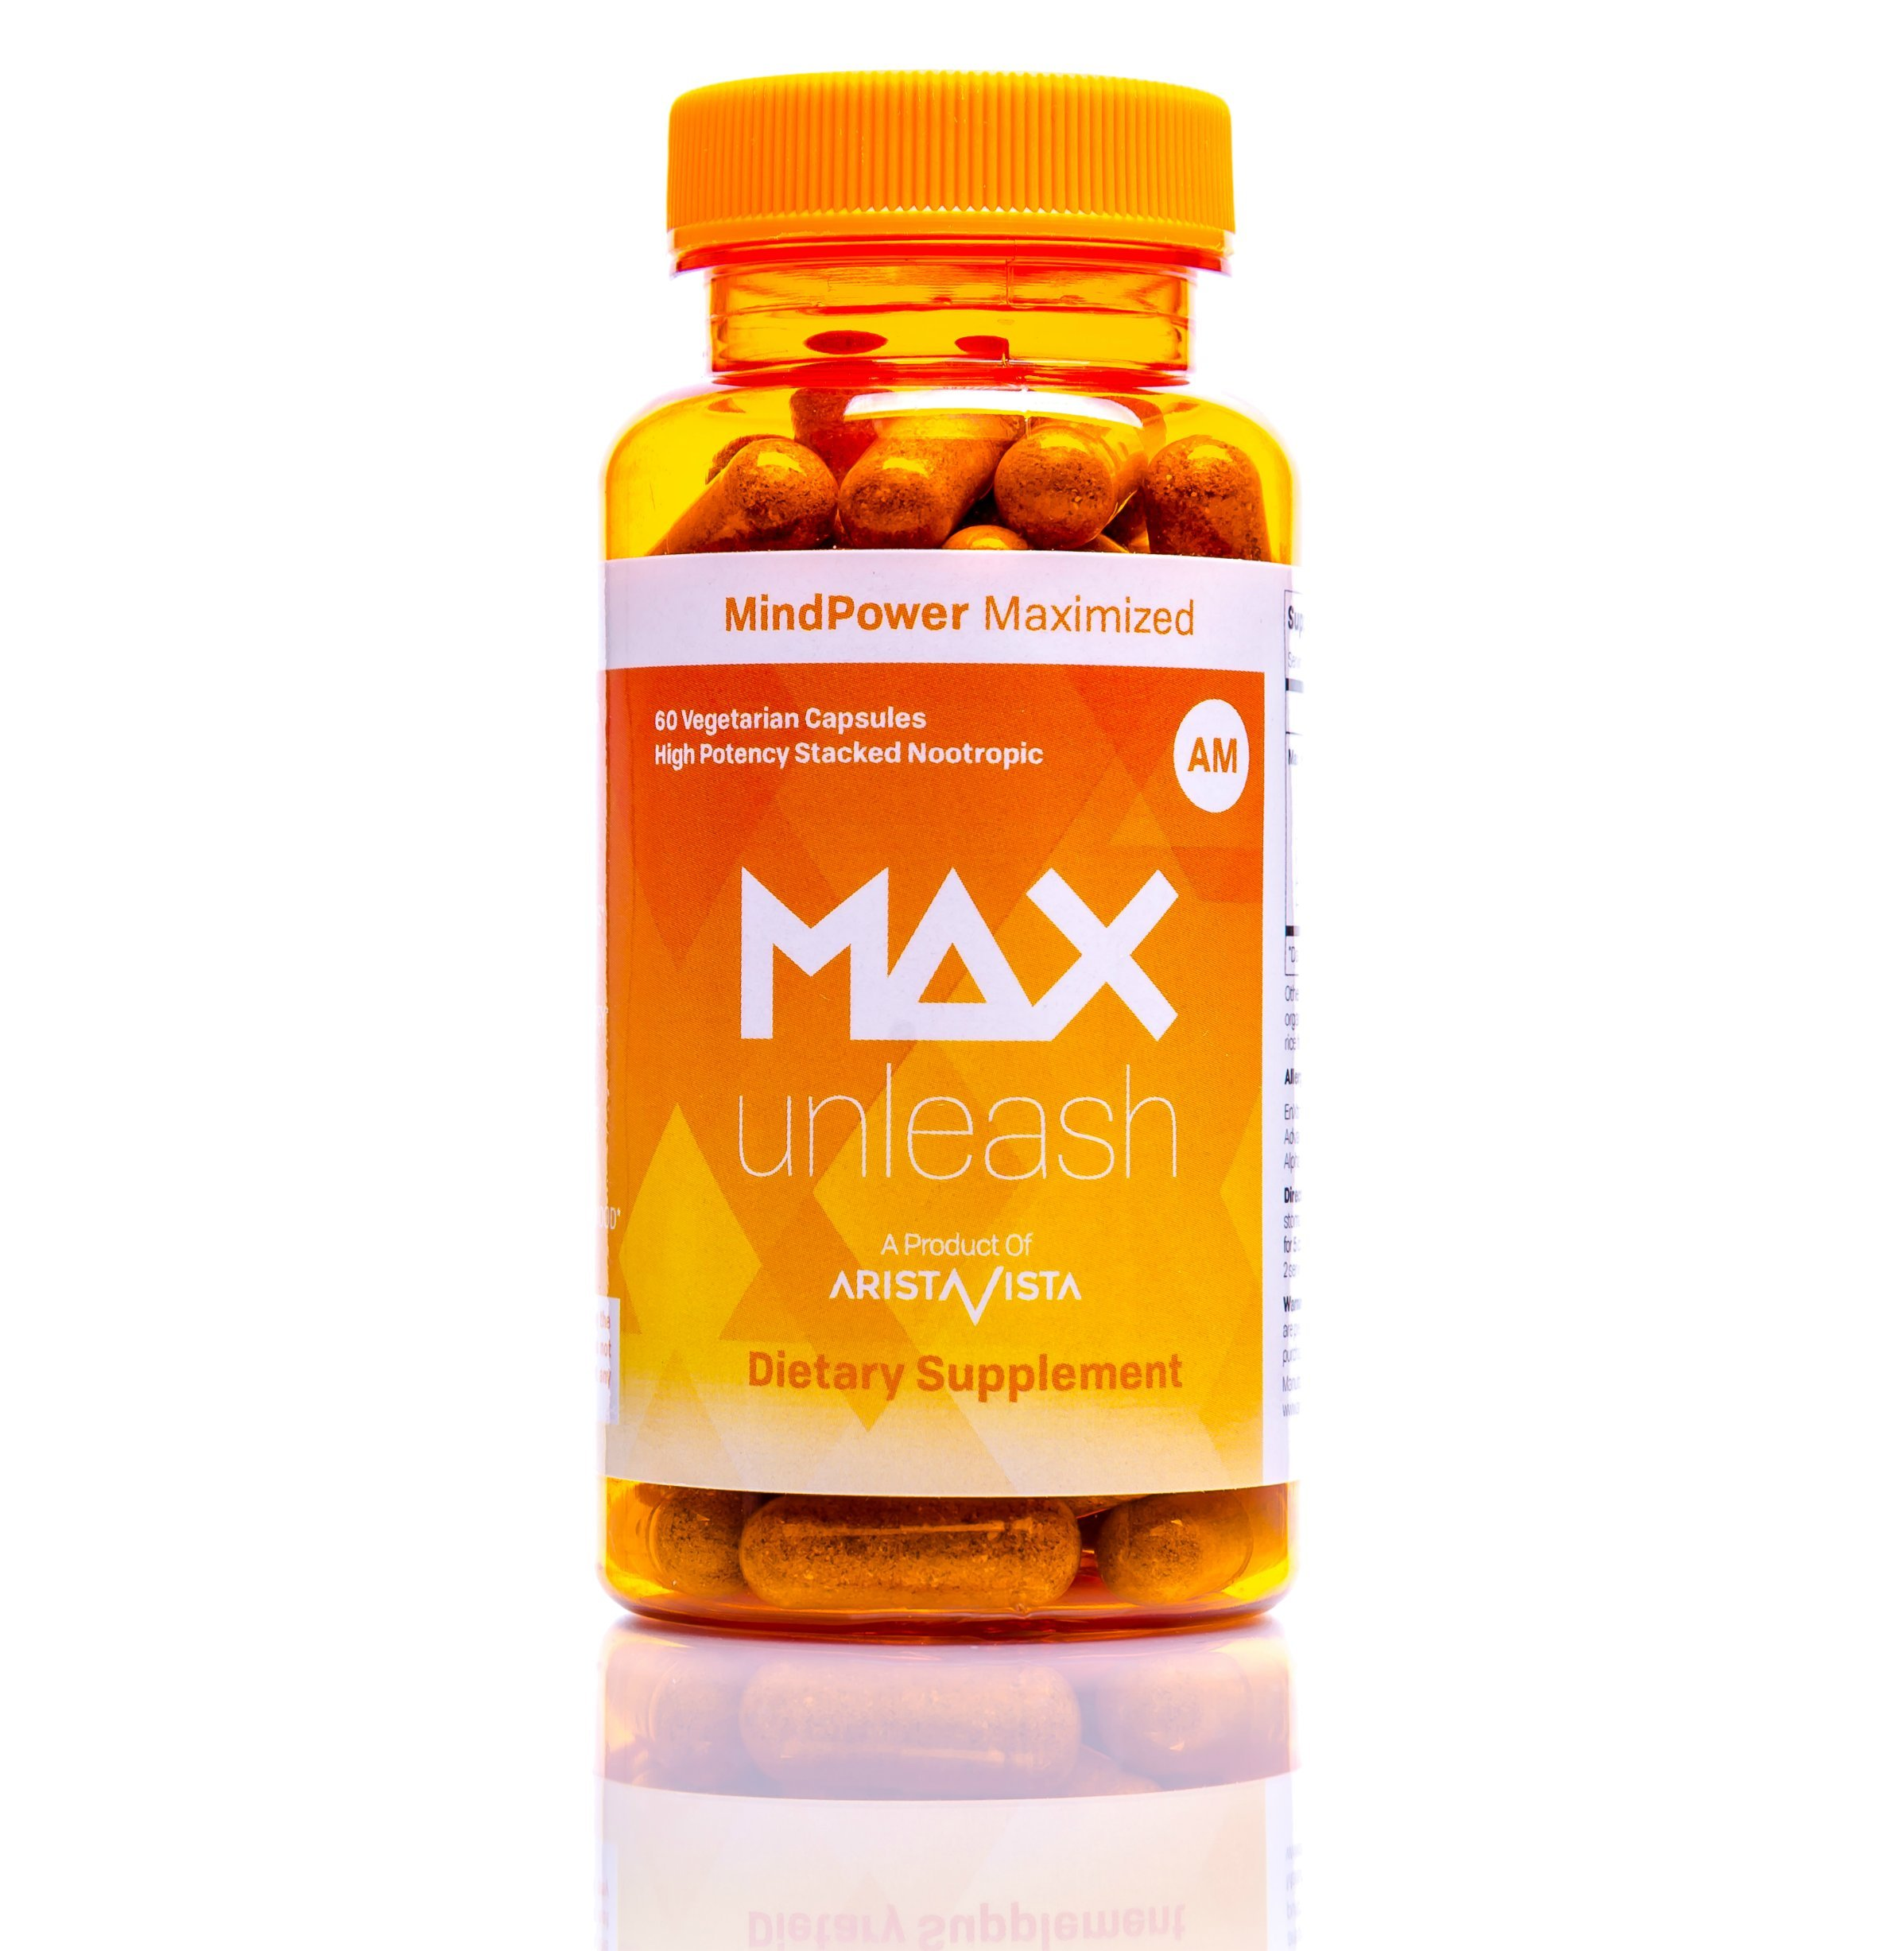 MAX Unleash: Powerful Energy, Metabolism & Focus Formula | Vegan Brain Supplement and Nootropic for Enhanced Mental Function and Clarity | for Men & Women | AristaVista (60 Vegetarian Capsules)